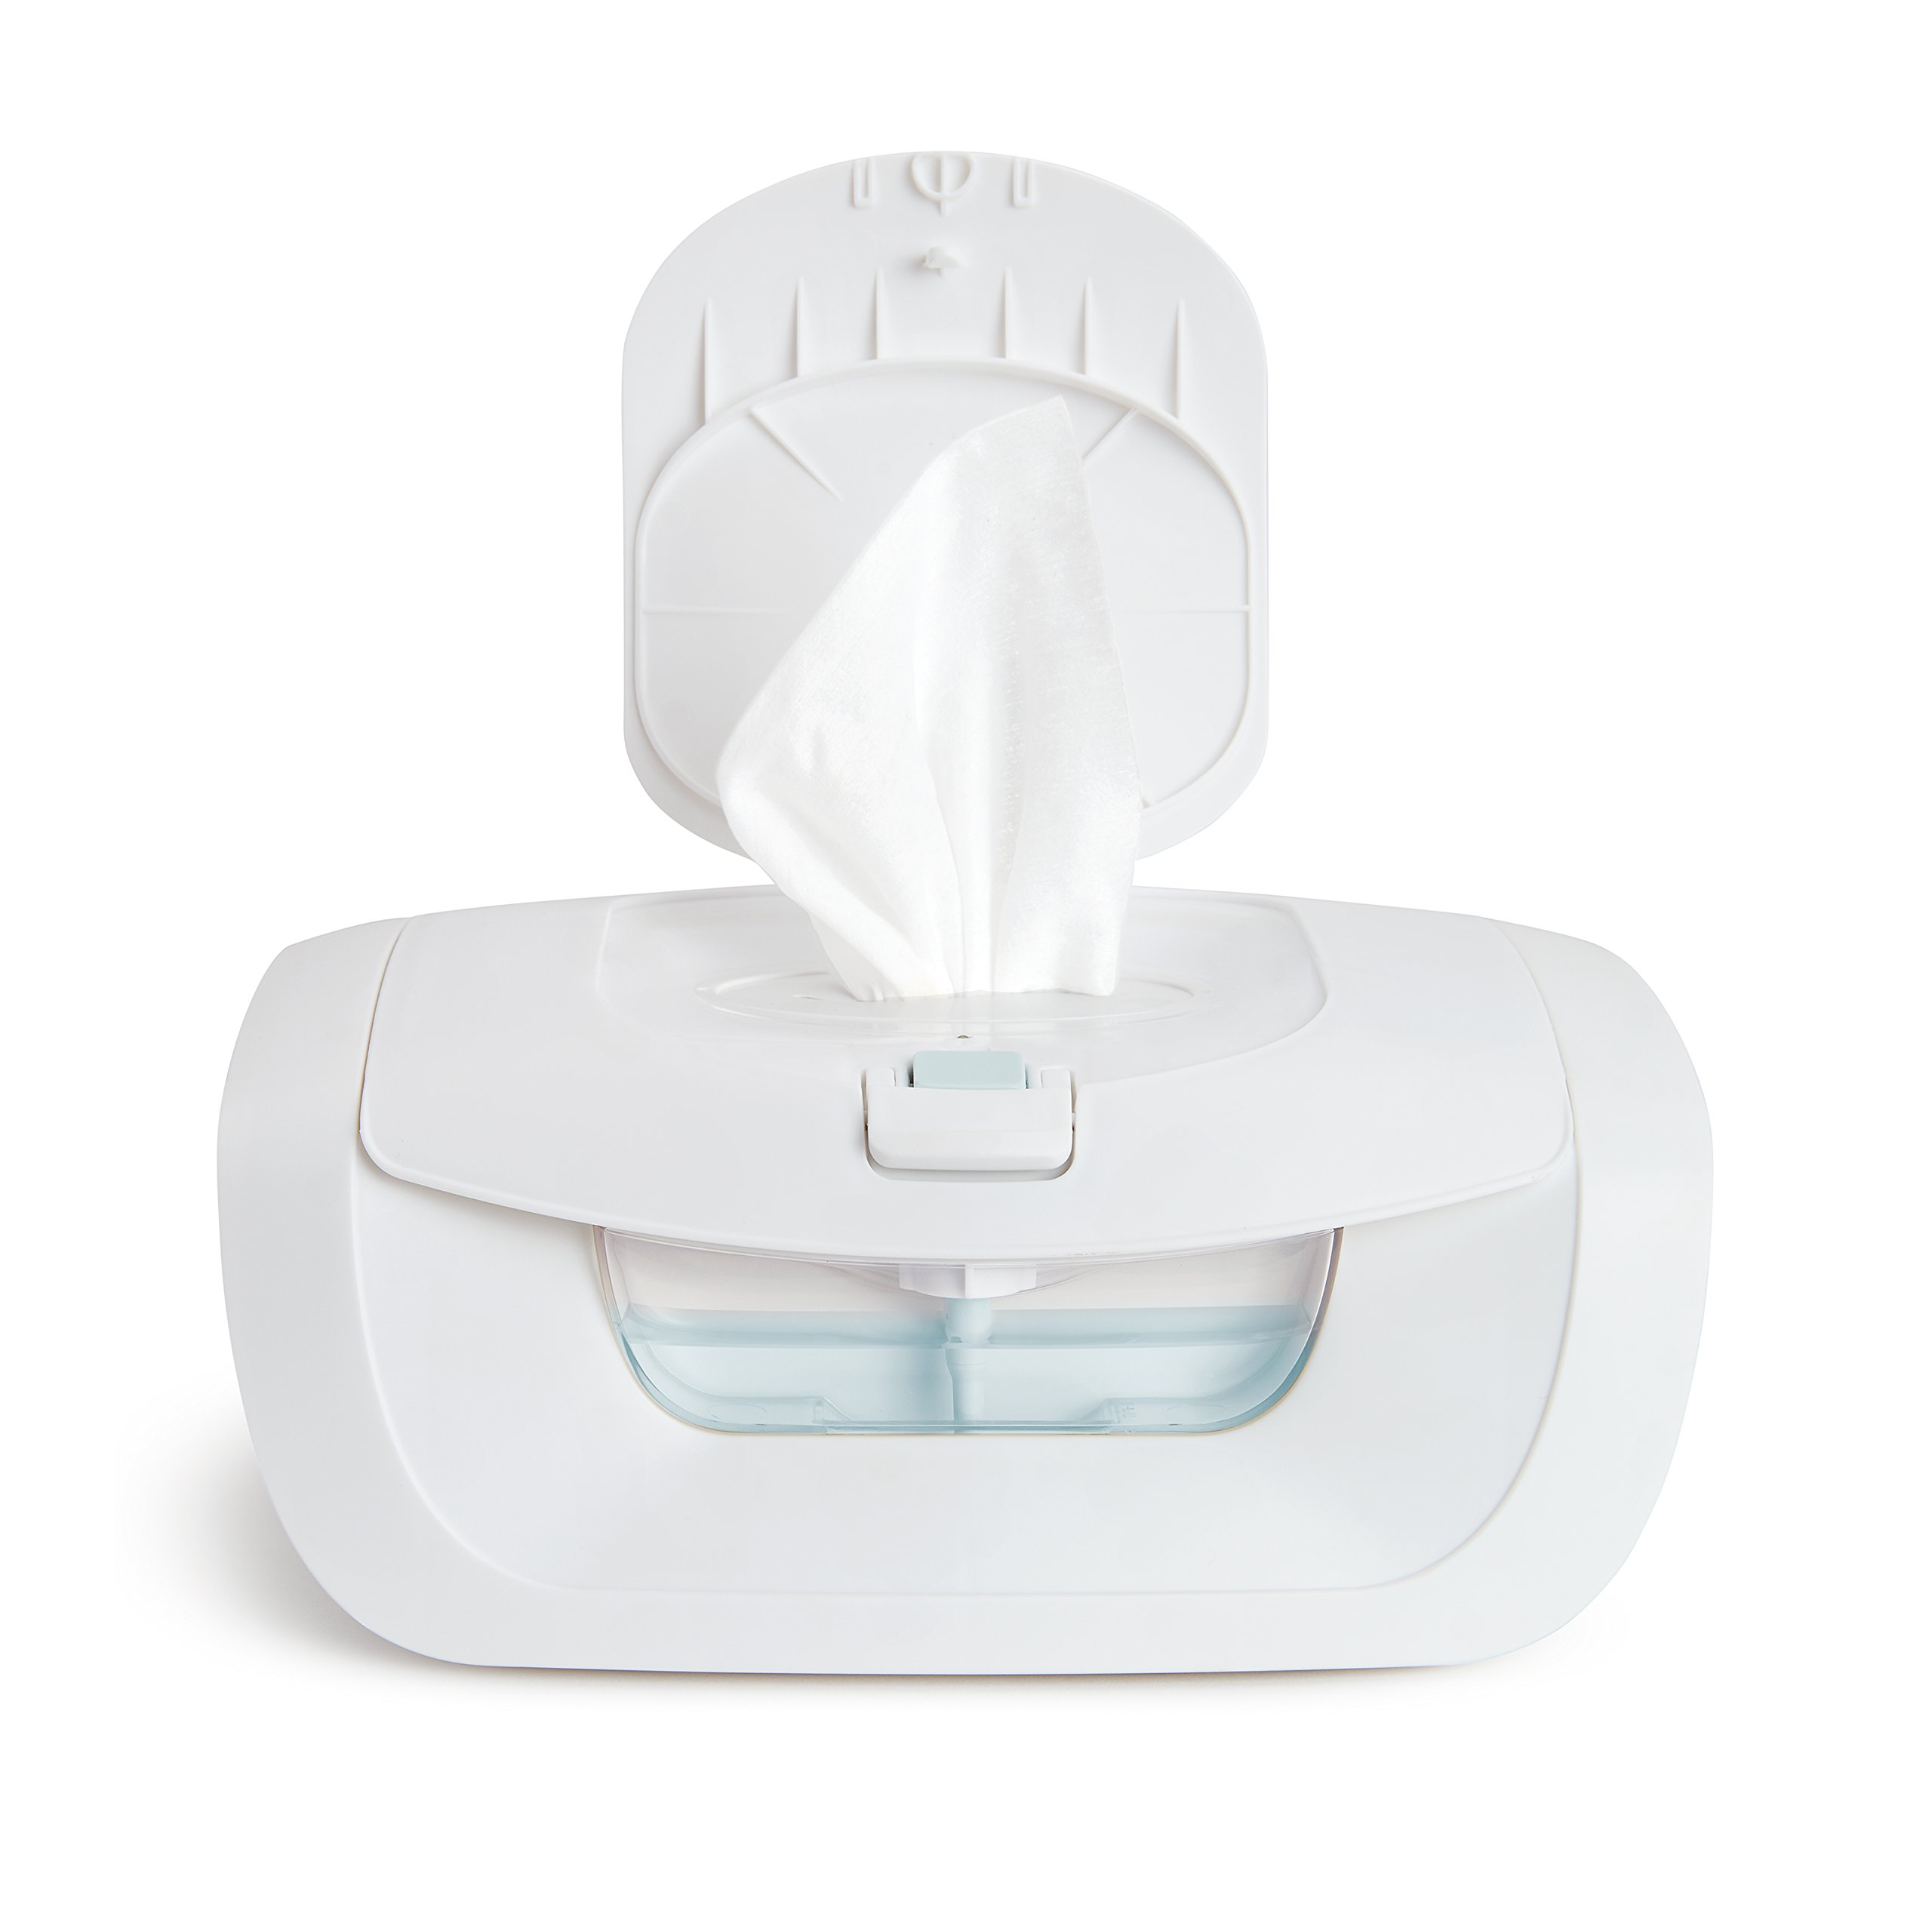 Munchkin Mist Wipe Warmer (New and Improved) by Munchkin